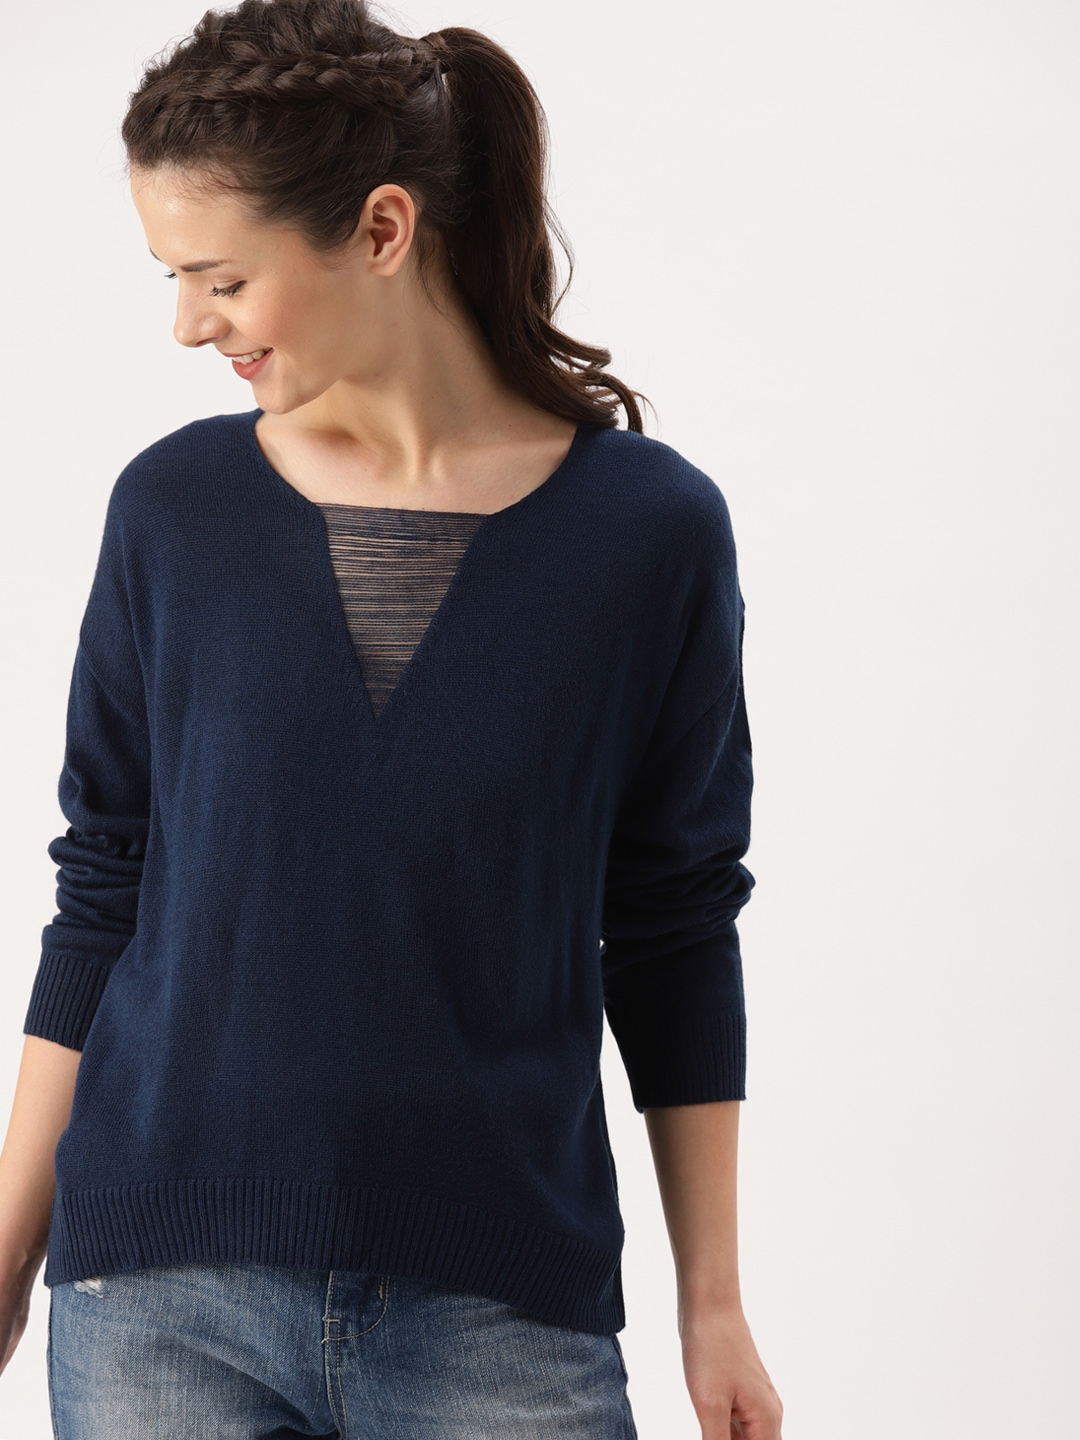 f199e5bc54 Sweaters for Women - Buy Womens Sweaters Online - Myntra